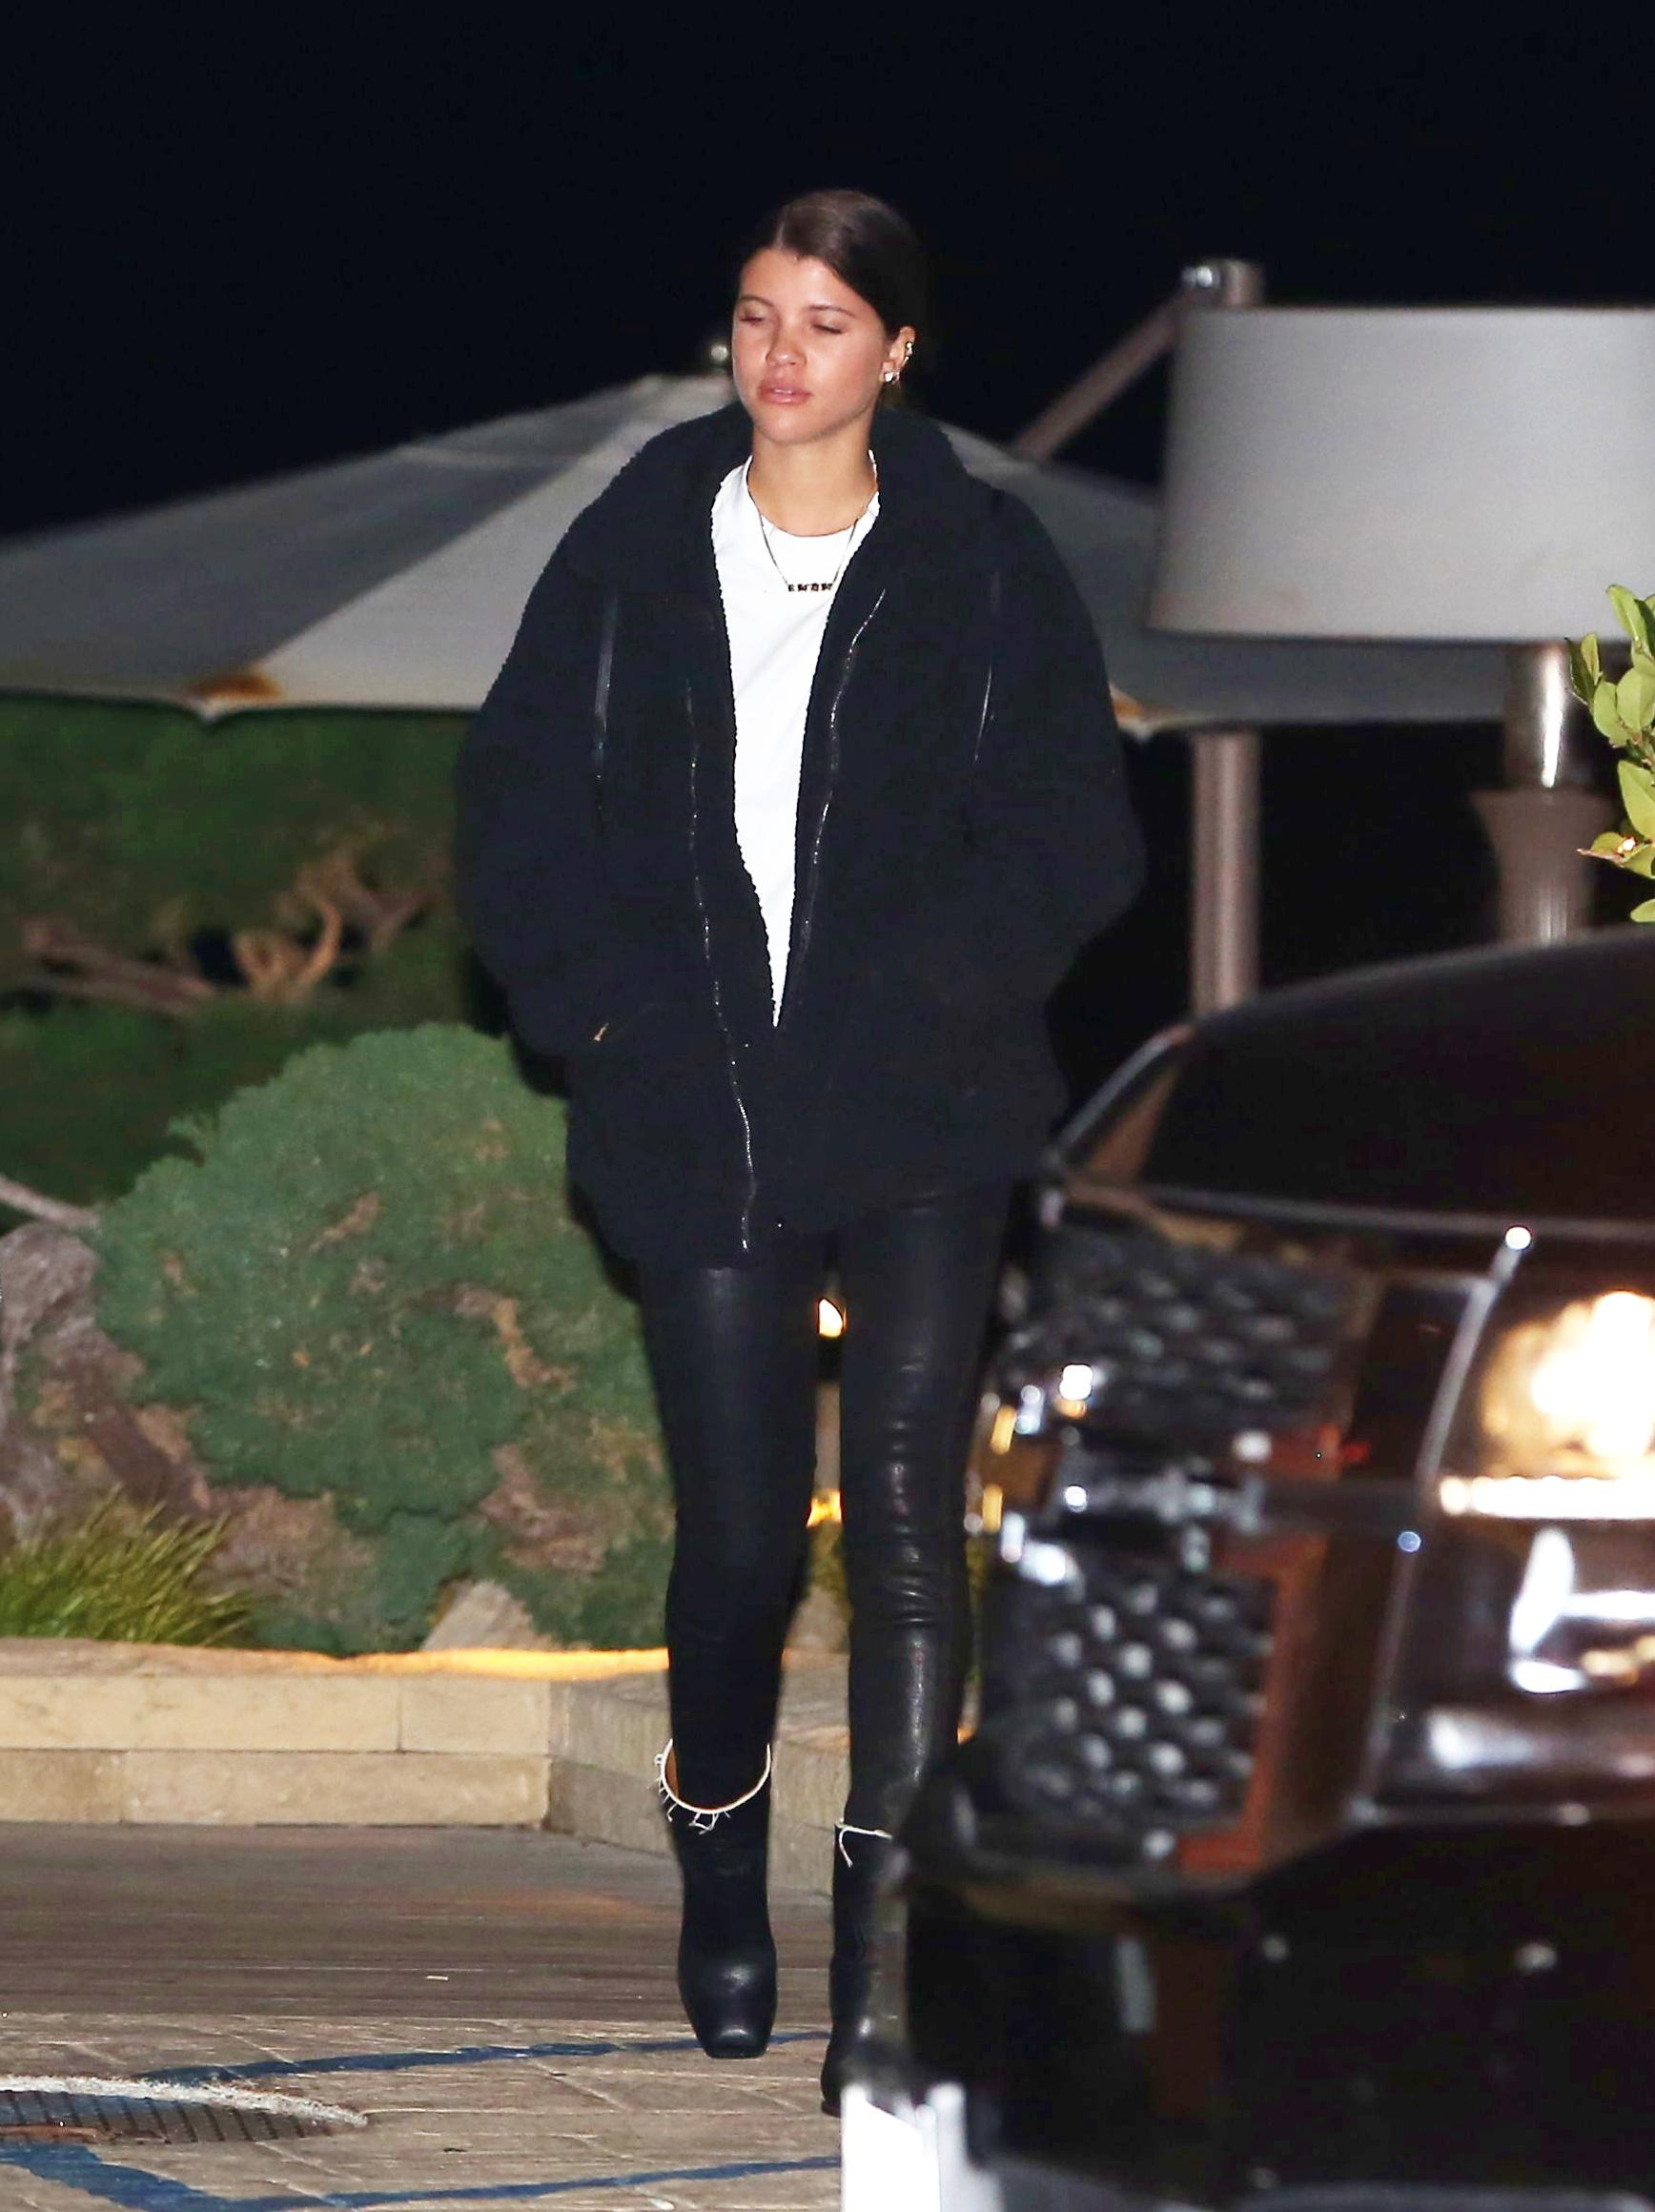 Sofia Richie at Nobu in Malibu